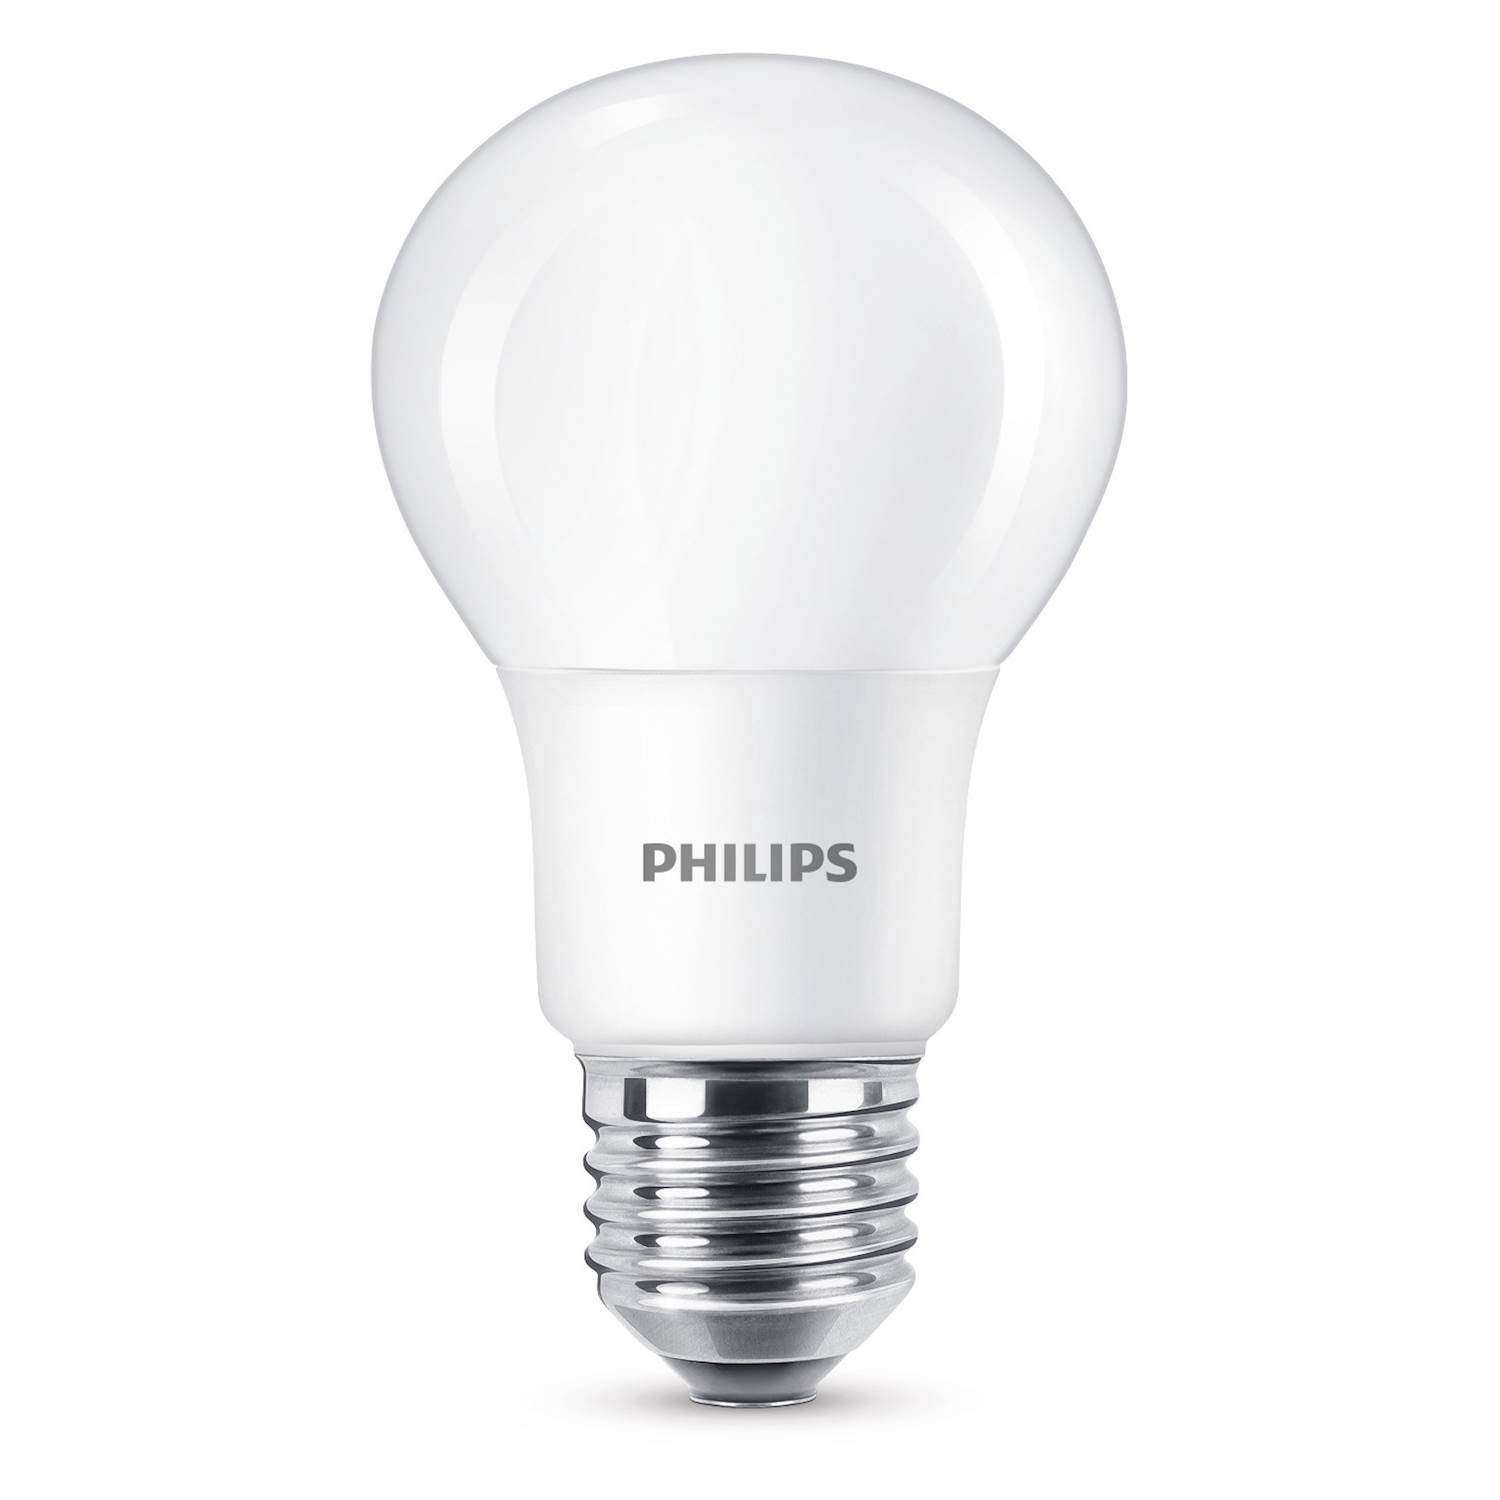 Philips LED NORMAL 8W E27 VV FR ND